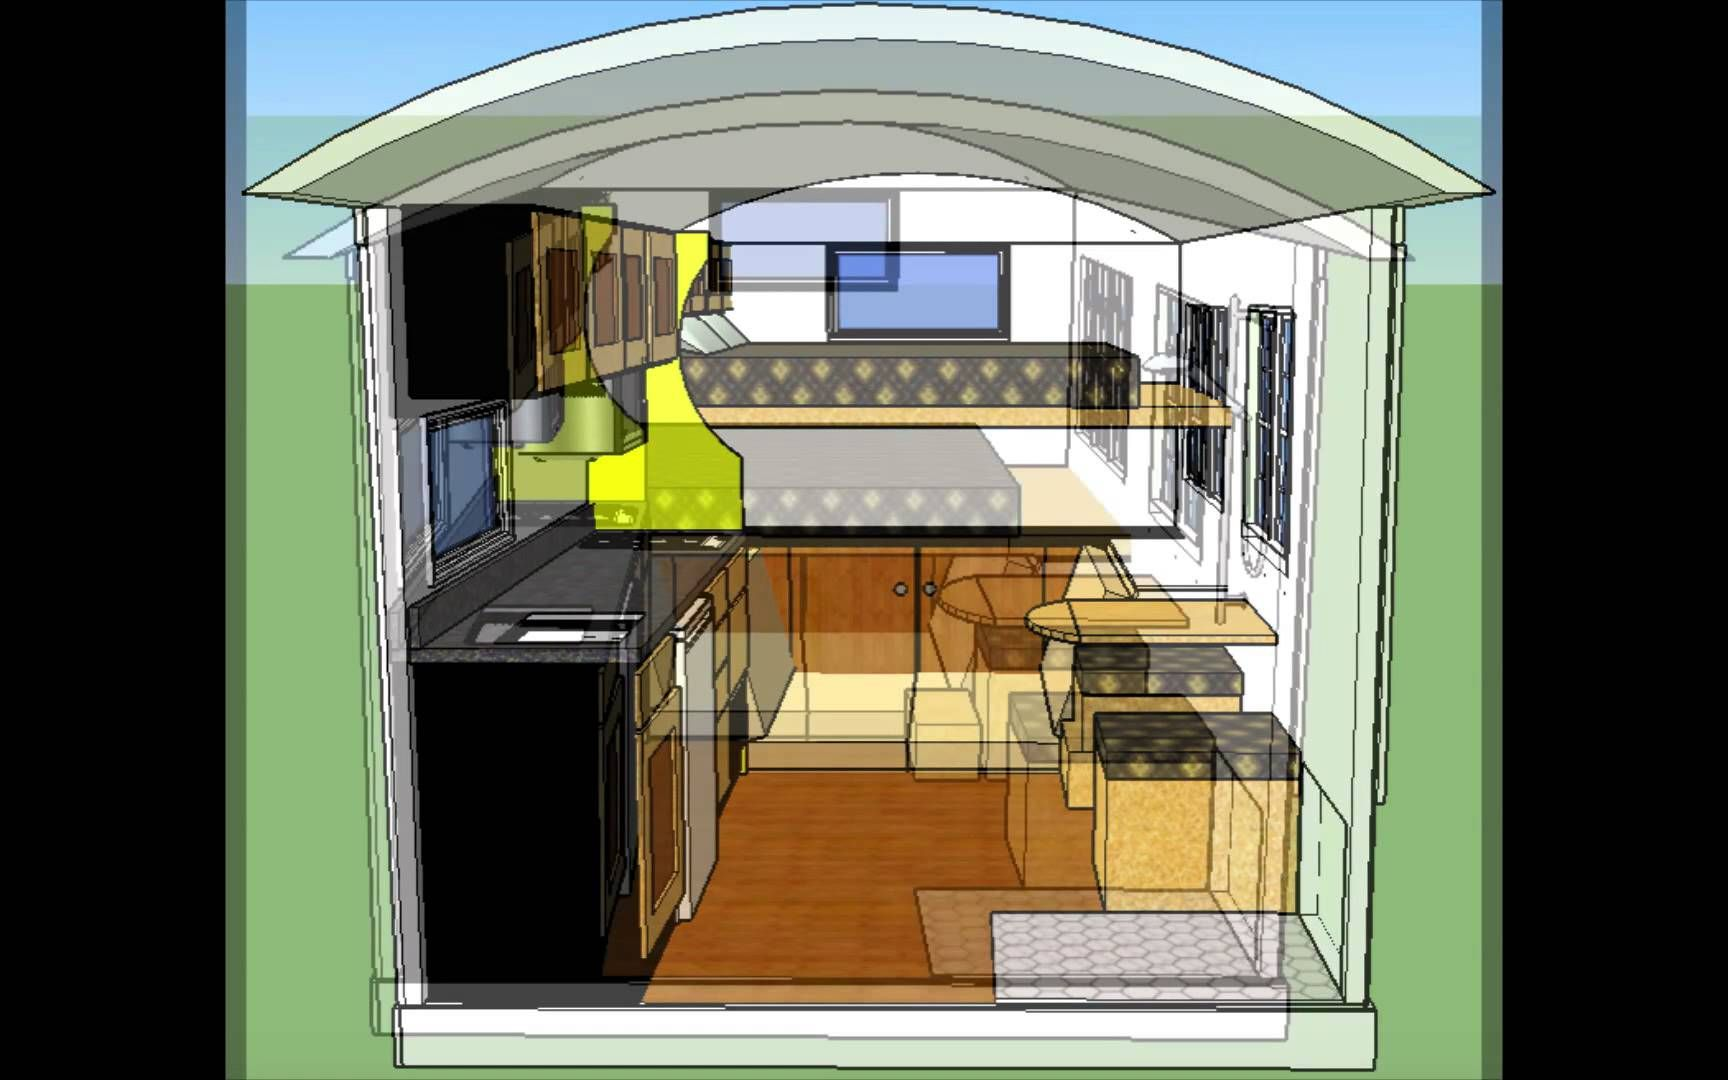 8x12 tiny house 2 hd 1080p this tiny house can be built on a